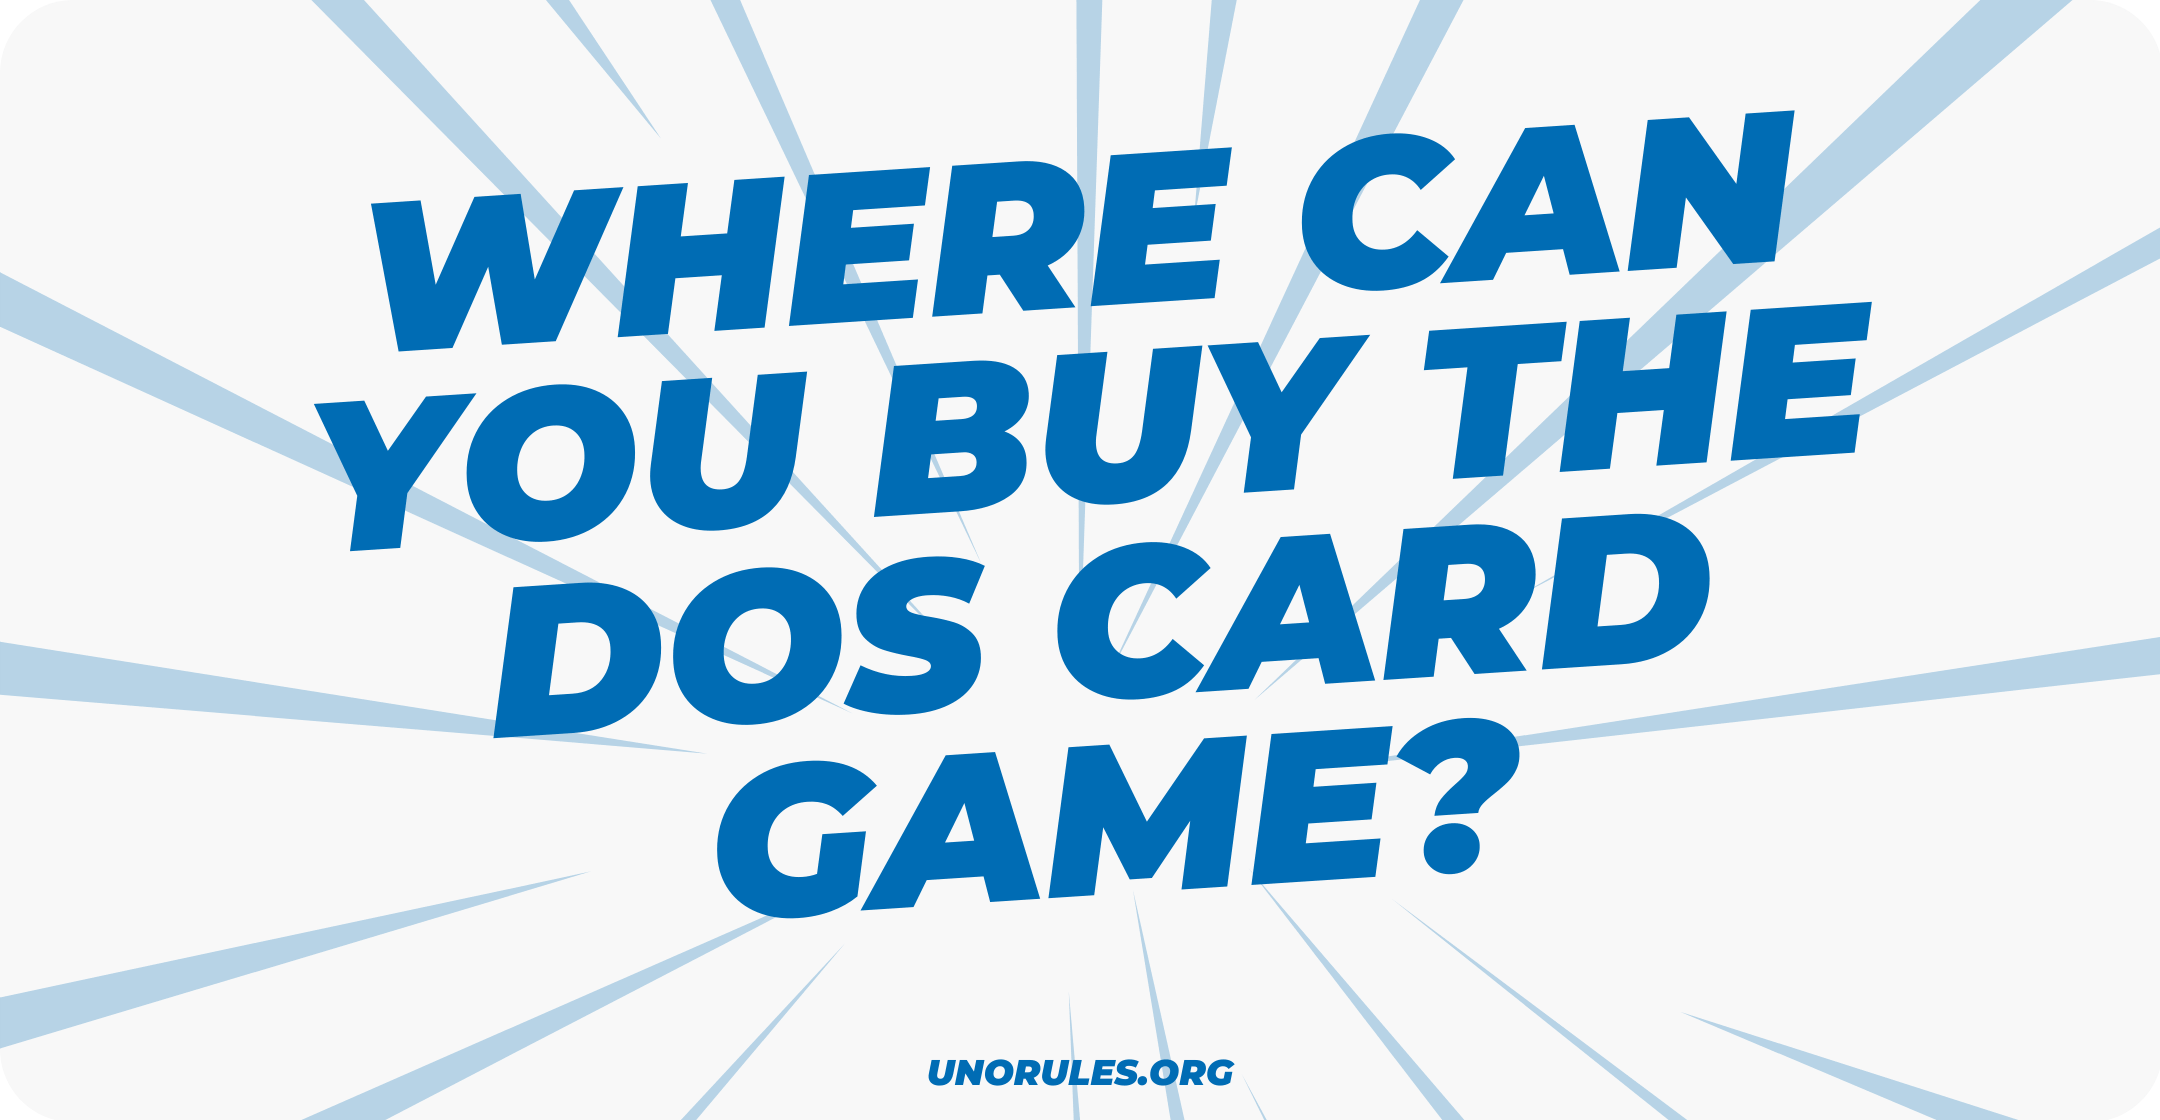 Where can you buy the Dos card game